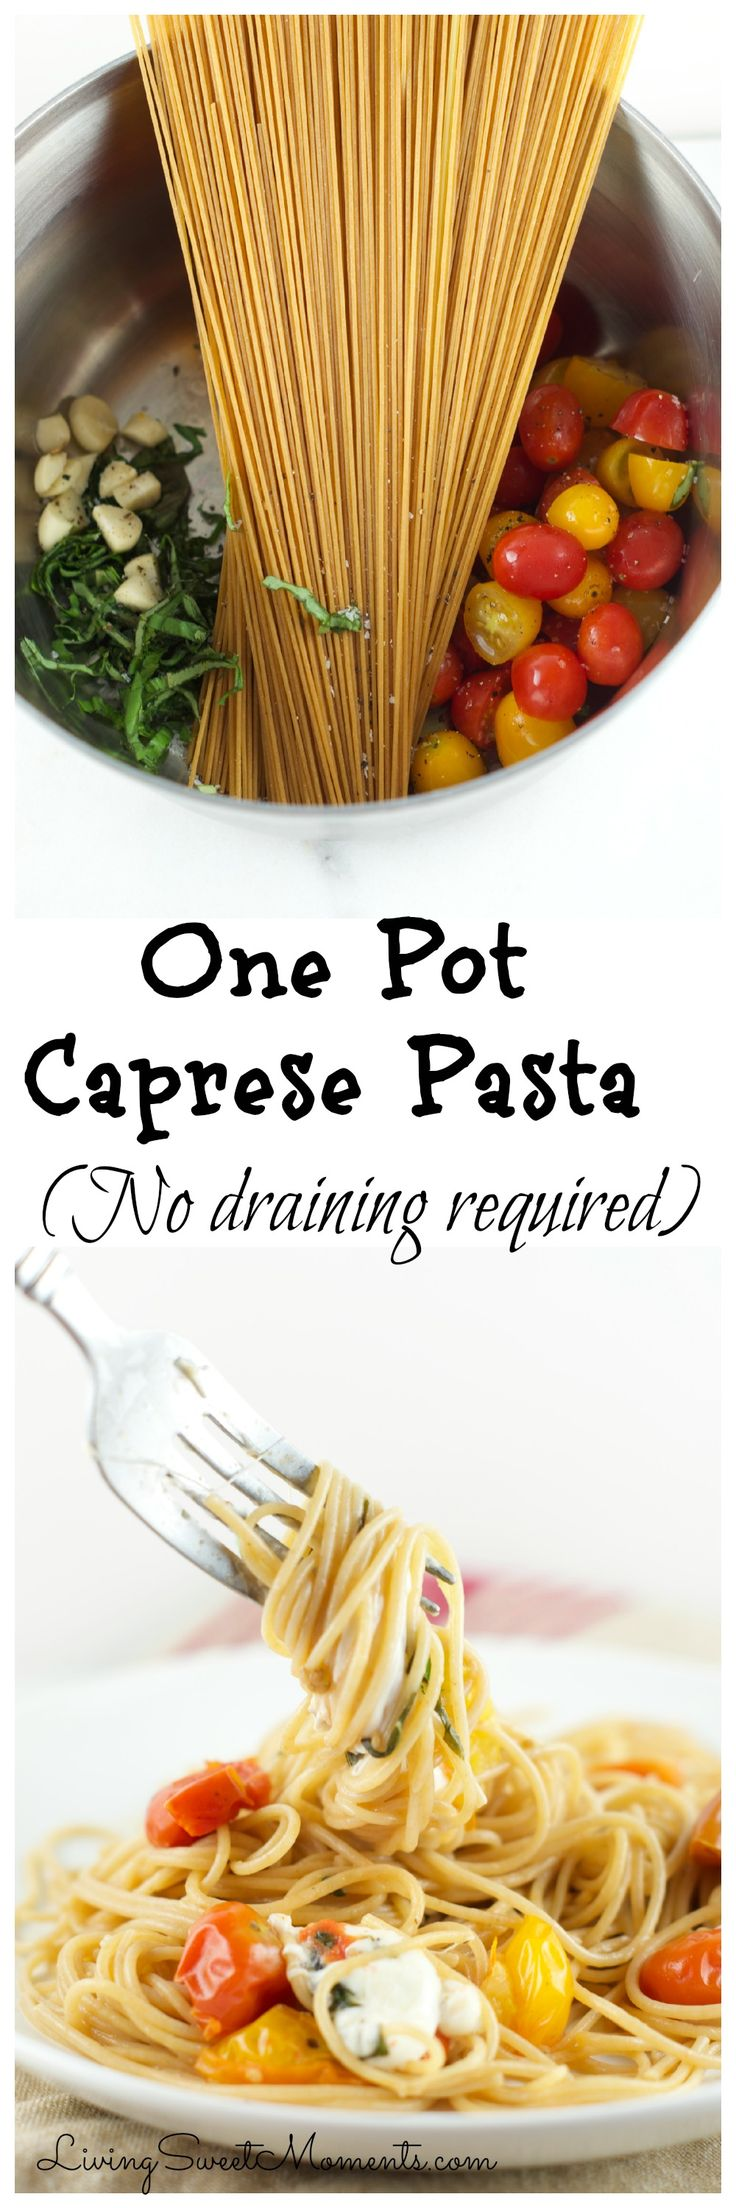 This delicious One Pot Caprese Pasta Recipe is made in 10 minutes and requires absolutely no draining. It's the perfect easy weeknight dinner idea and great for entertaining as well!